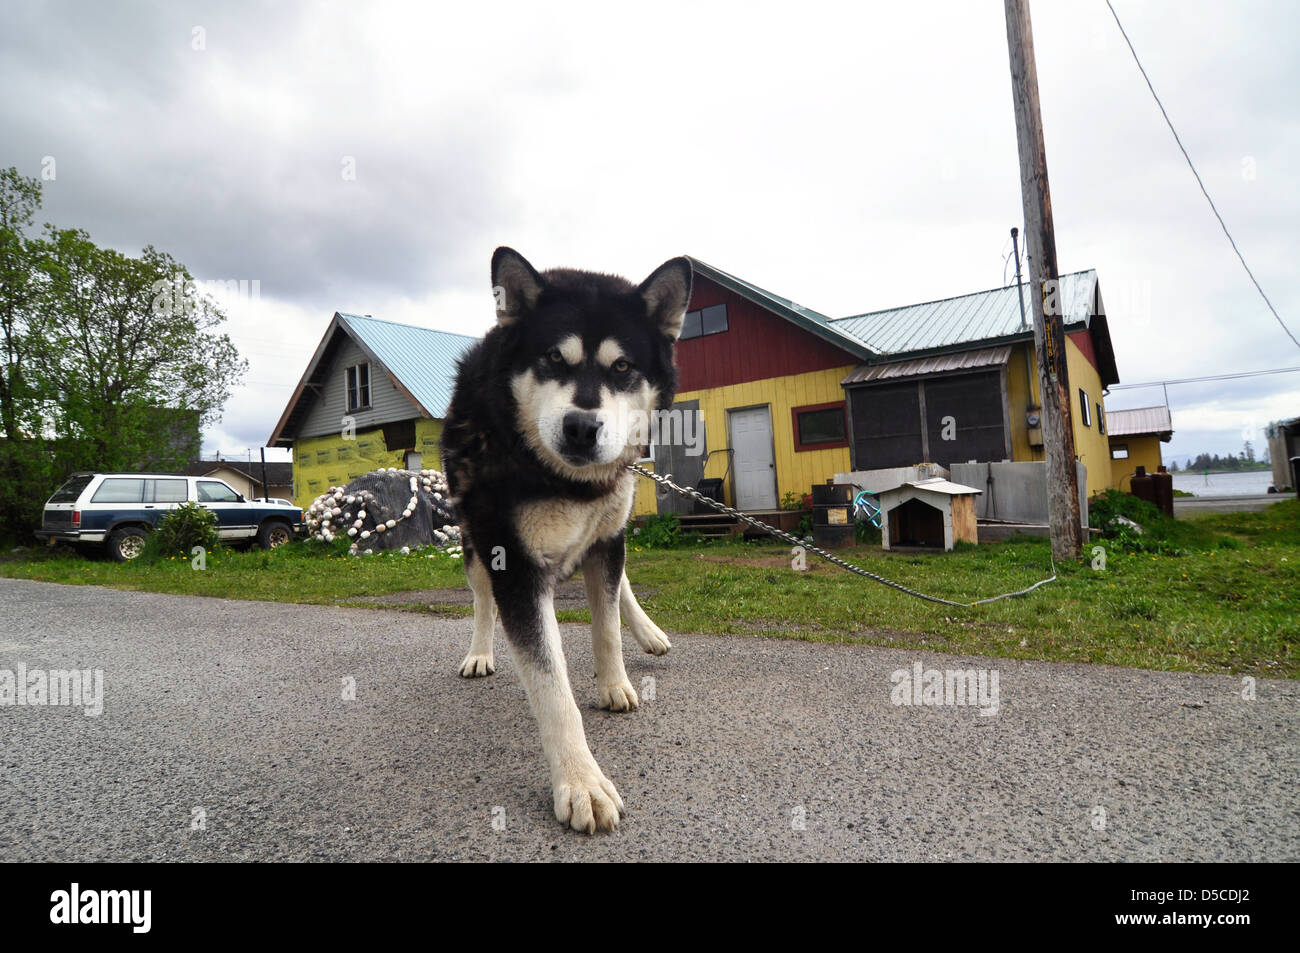 Dog in front of house, Kake, Alaska. - Stock Image